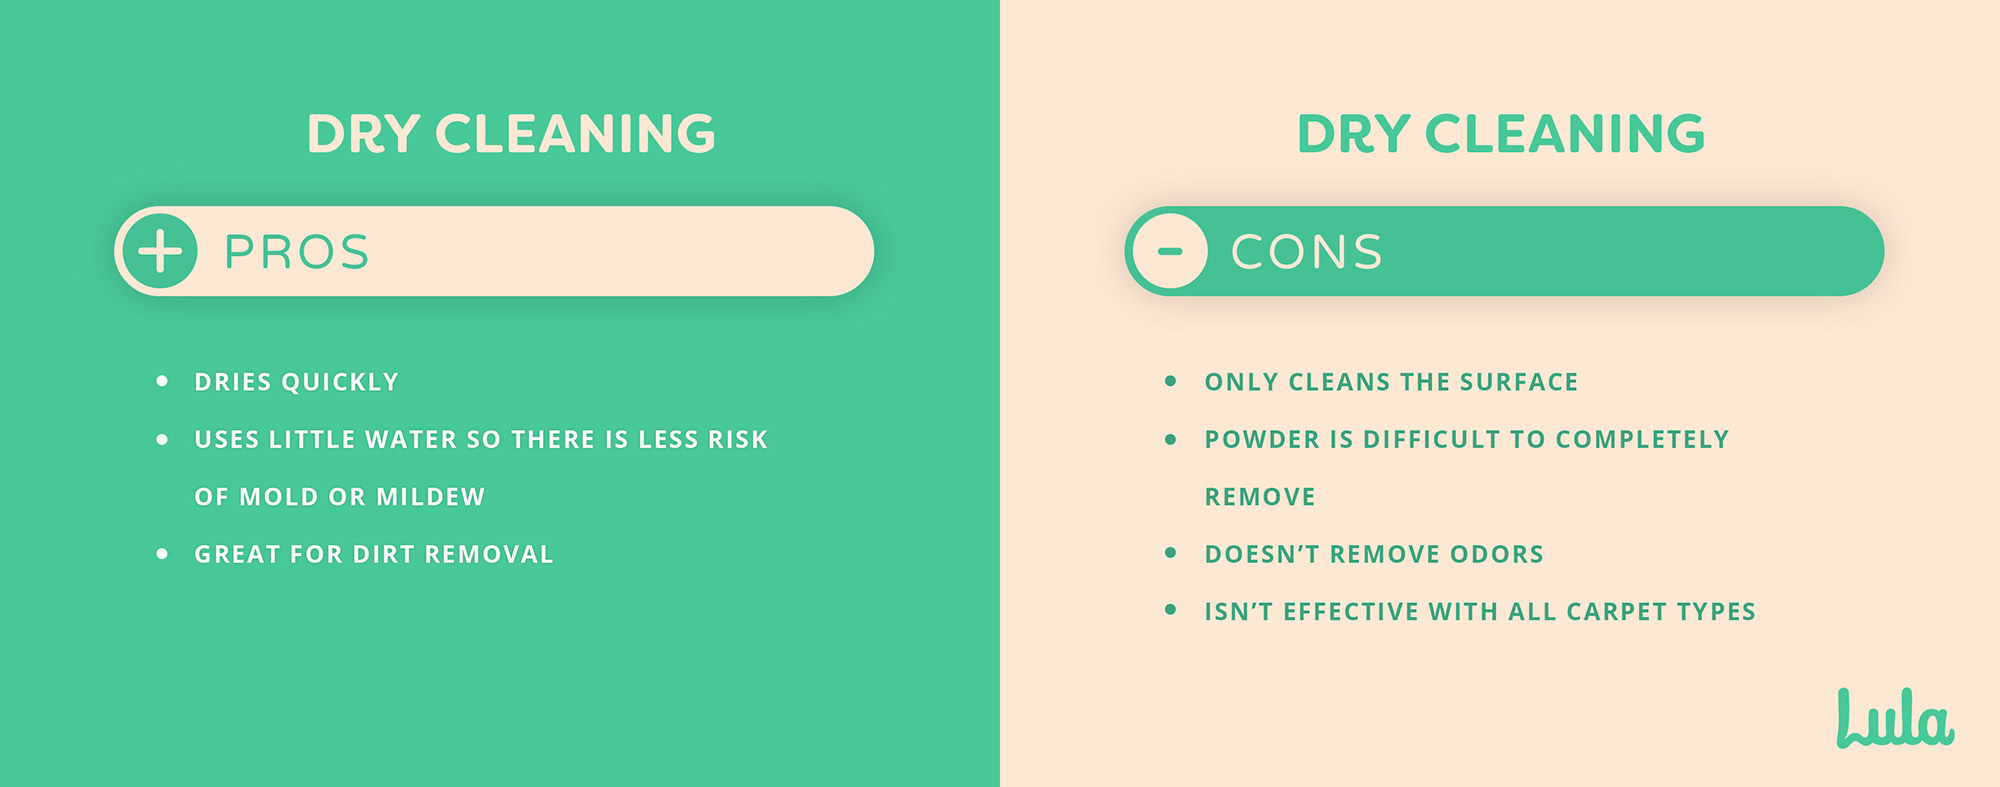 pros and cons of dry carpet cleaning